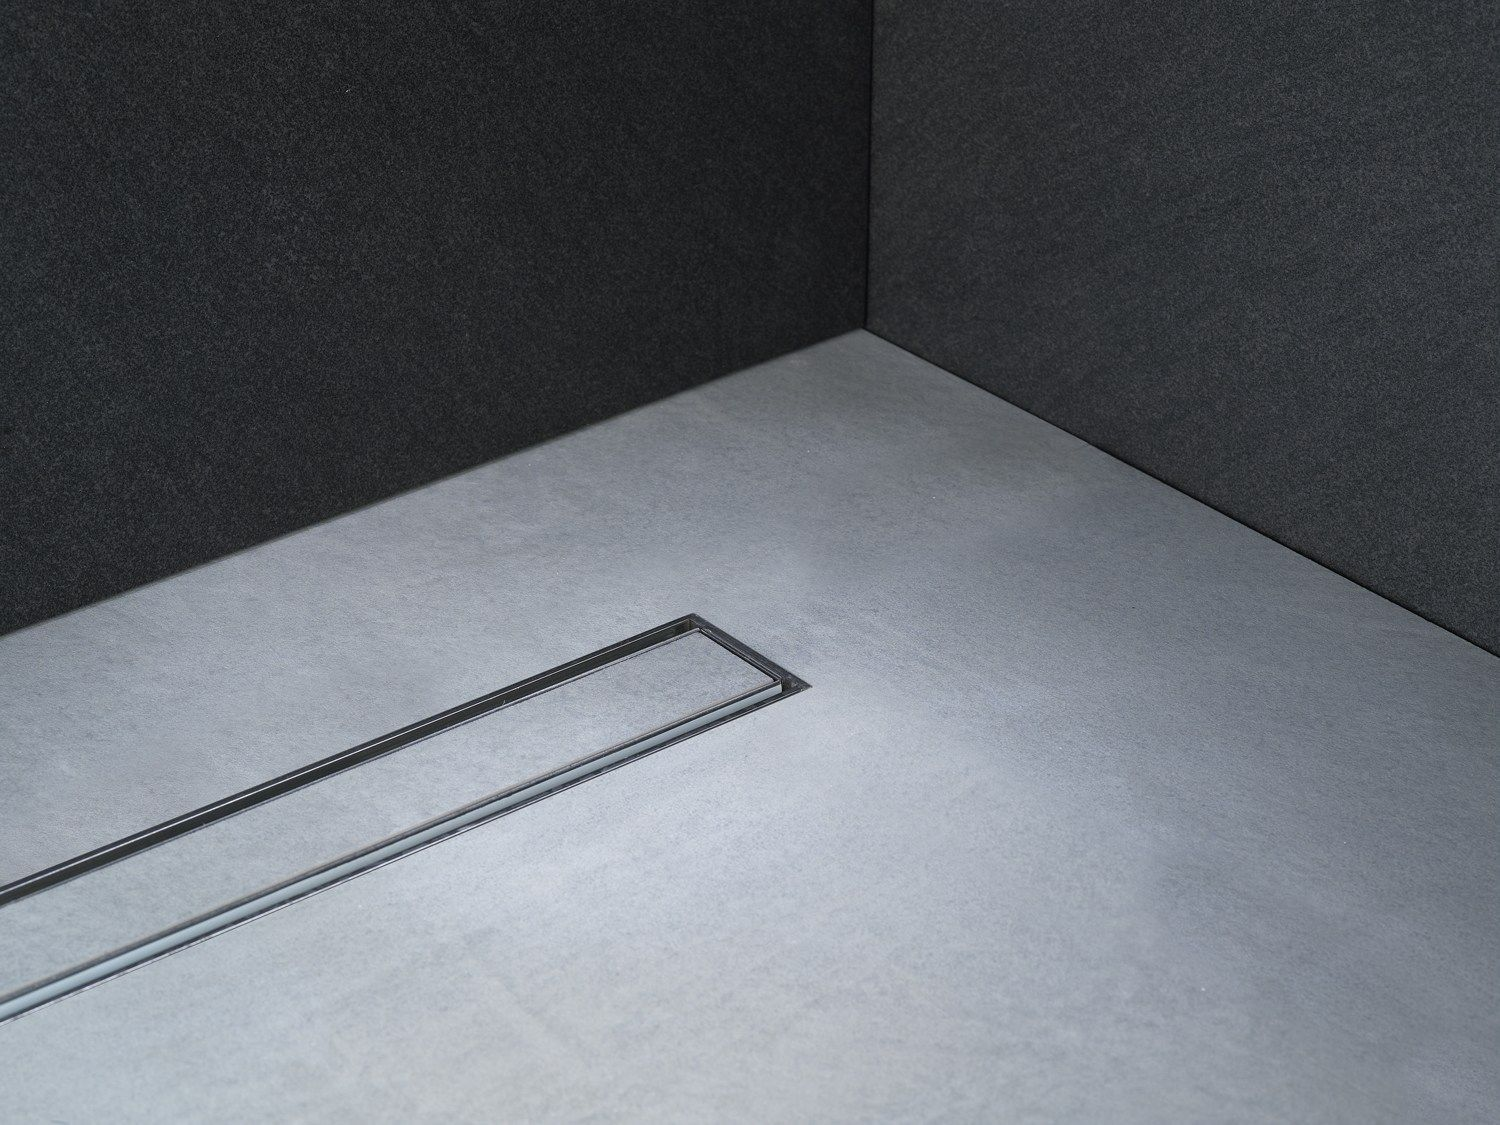 Stainless Steel Shower Channel Linear Drain By Profilitec With